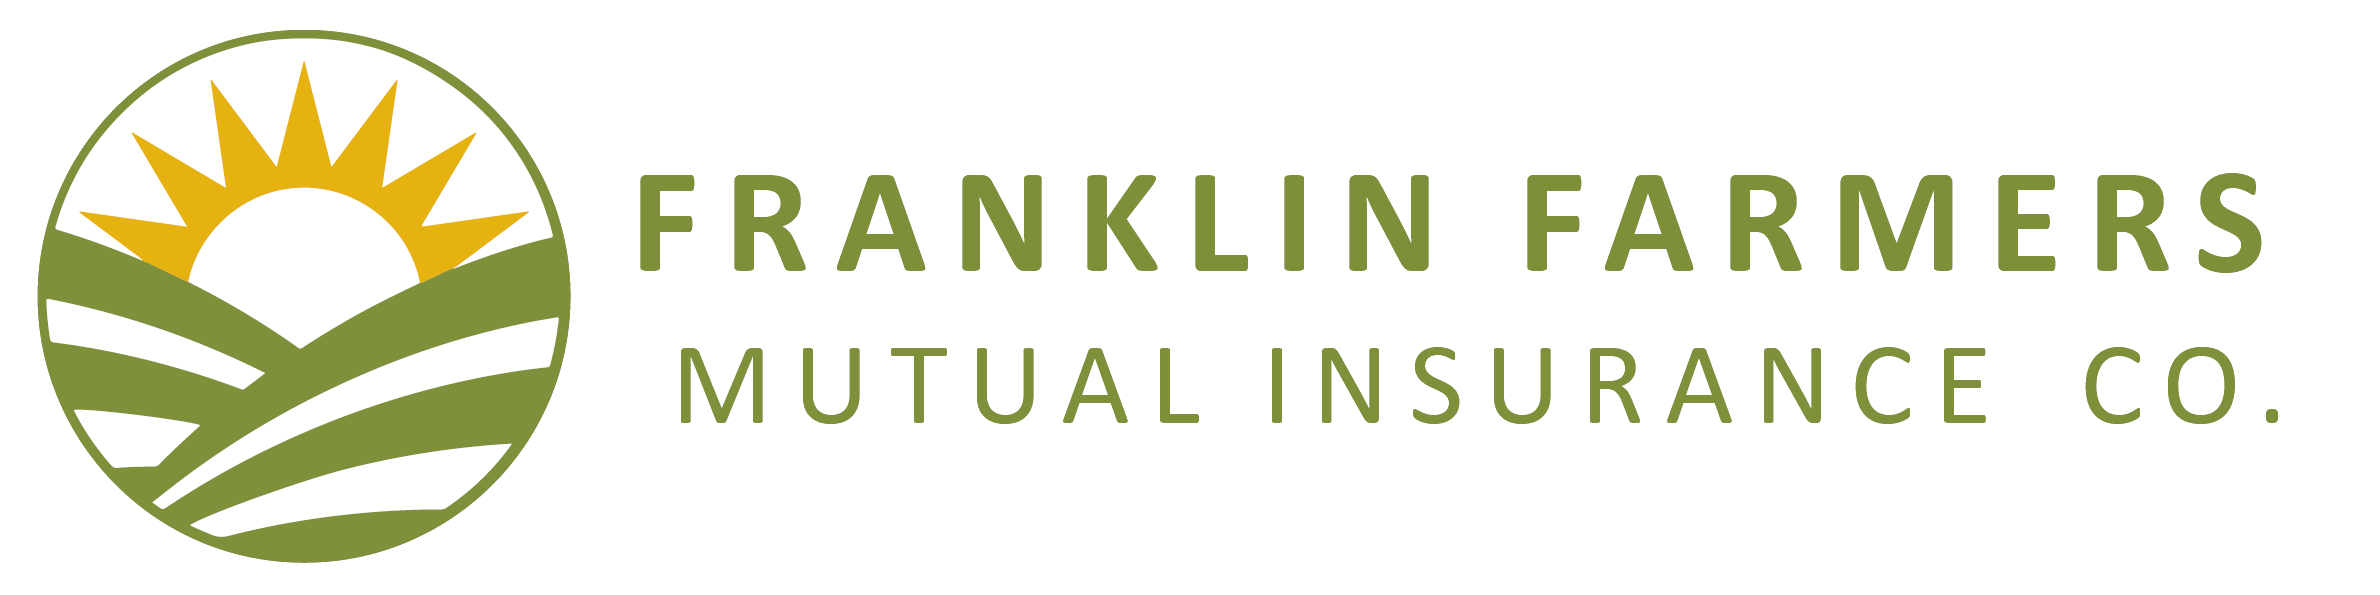 Franklin Farmers Mutual Insurance